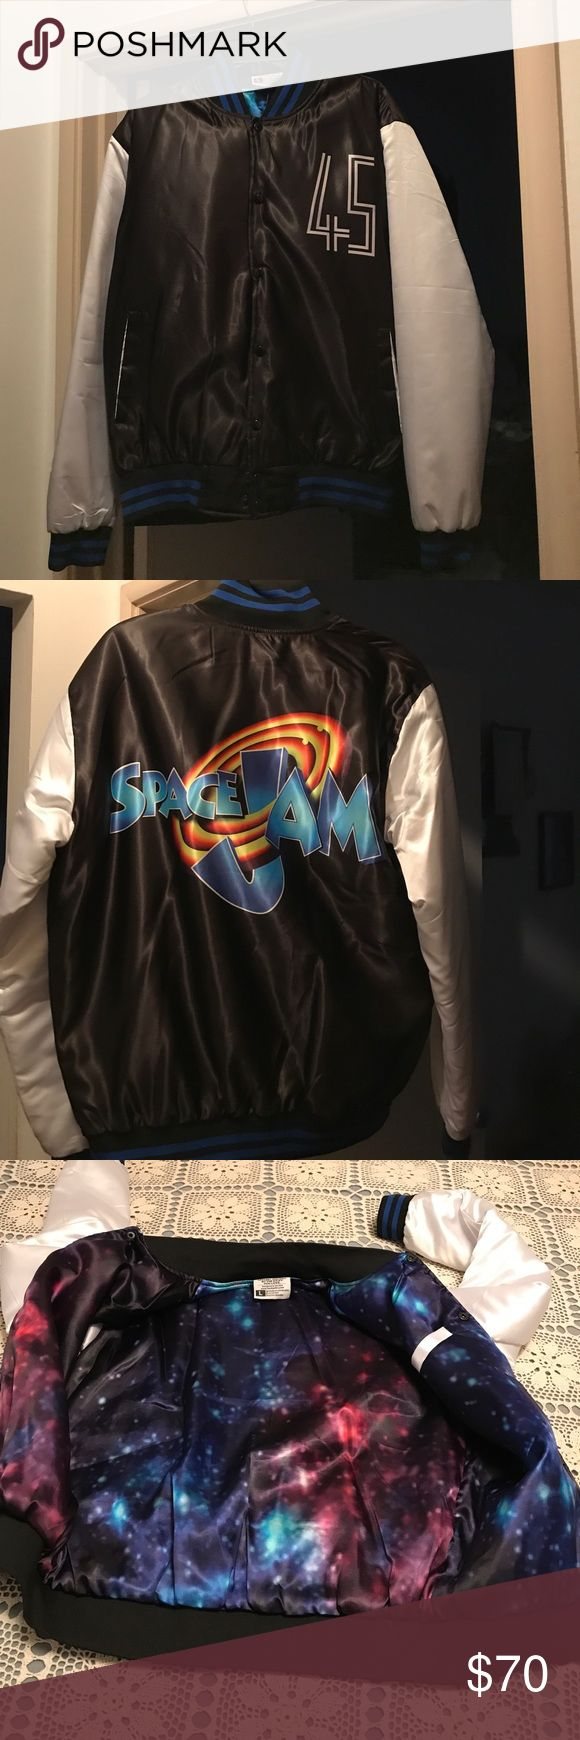 Space jam jacket Used Jordan retro space jam jacket worn 2 time but still in great condition and goes great with the space jam Jordan 11's Jackets & Coats Lightweight & Shirt Jackets